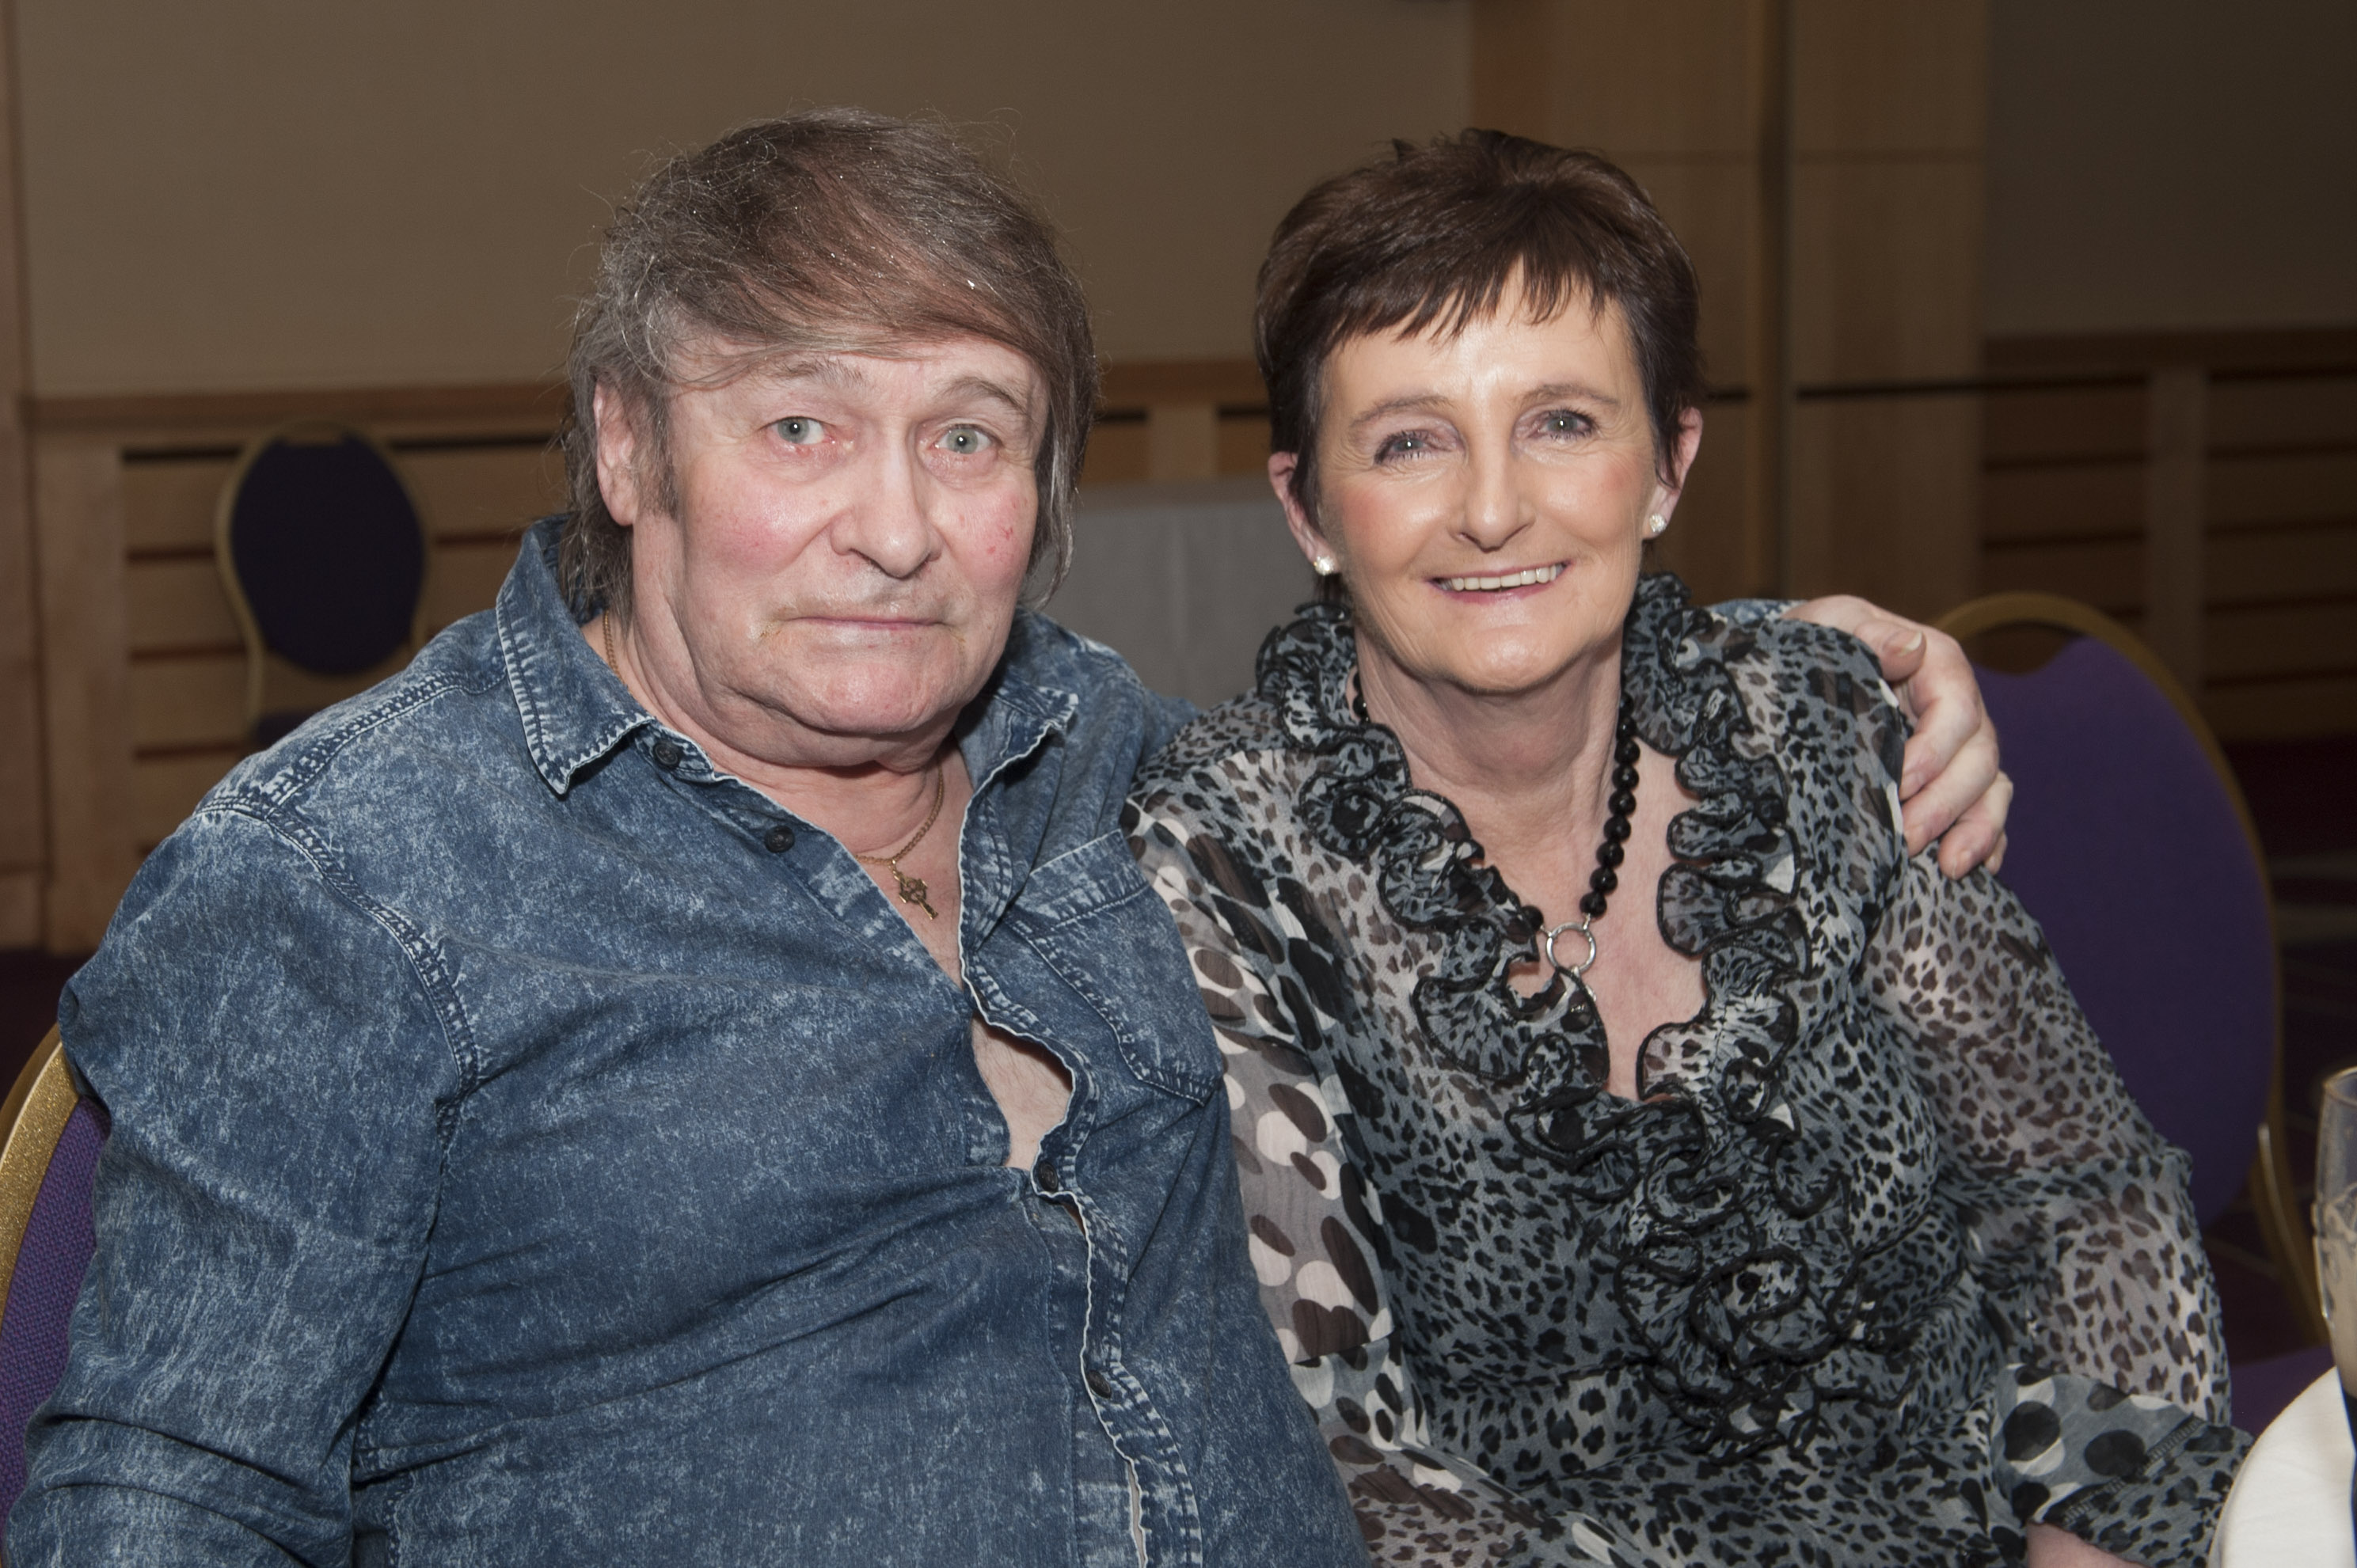 Joe and Jennifer Kelly at Pat The President's Country Music & Western Night for Monaghan Rotary Club in The Hillgrove Hotel. ©Rory Geary/The Northern Standard